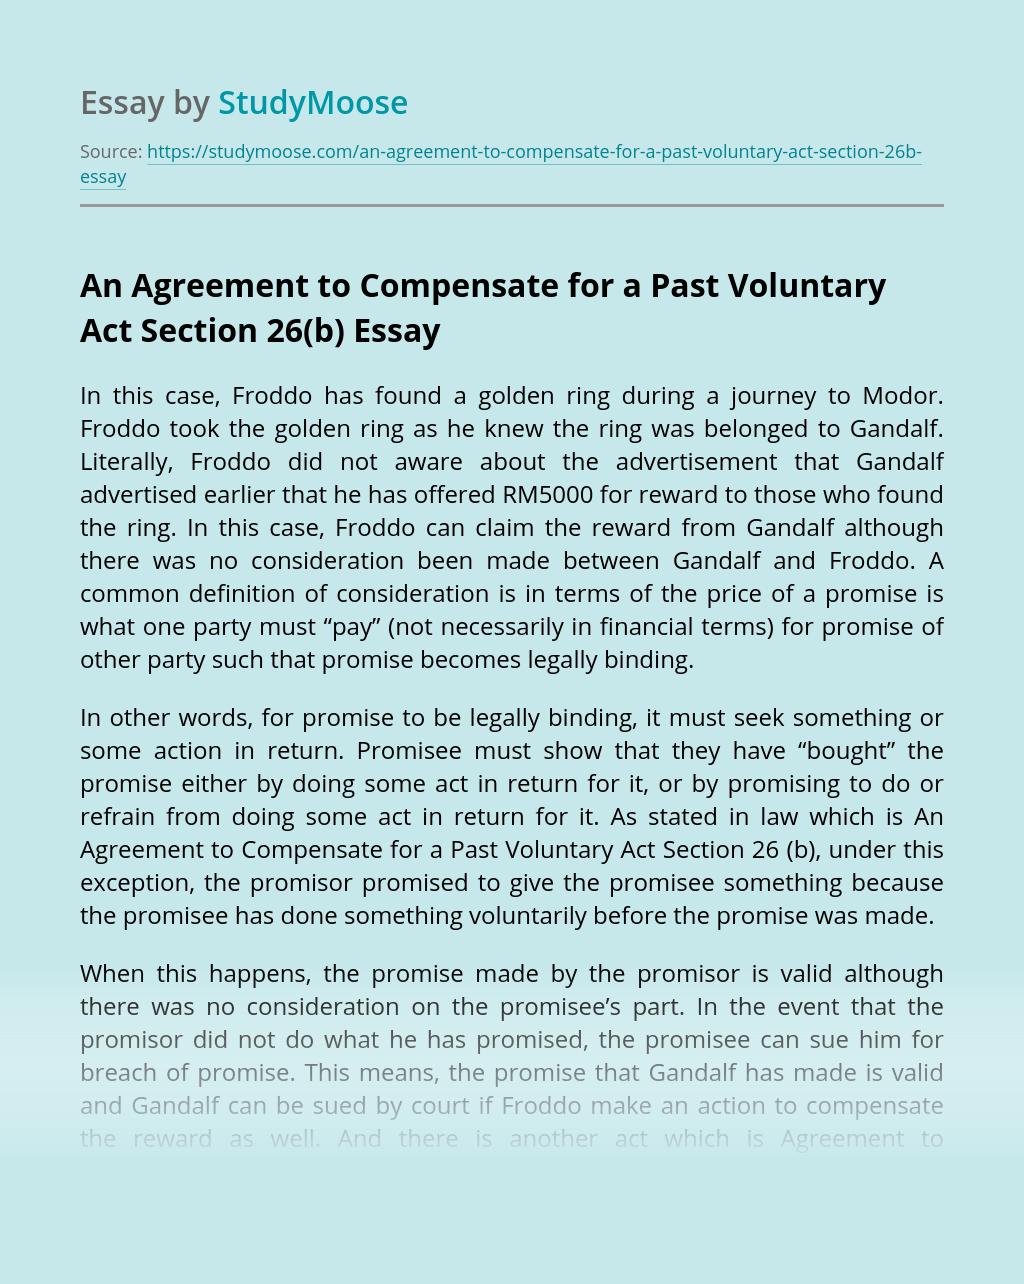 An Agreement to Compensate for a Past Voluntary Act Section 26(b)